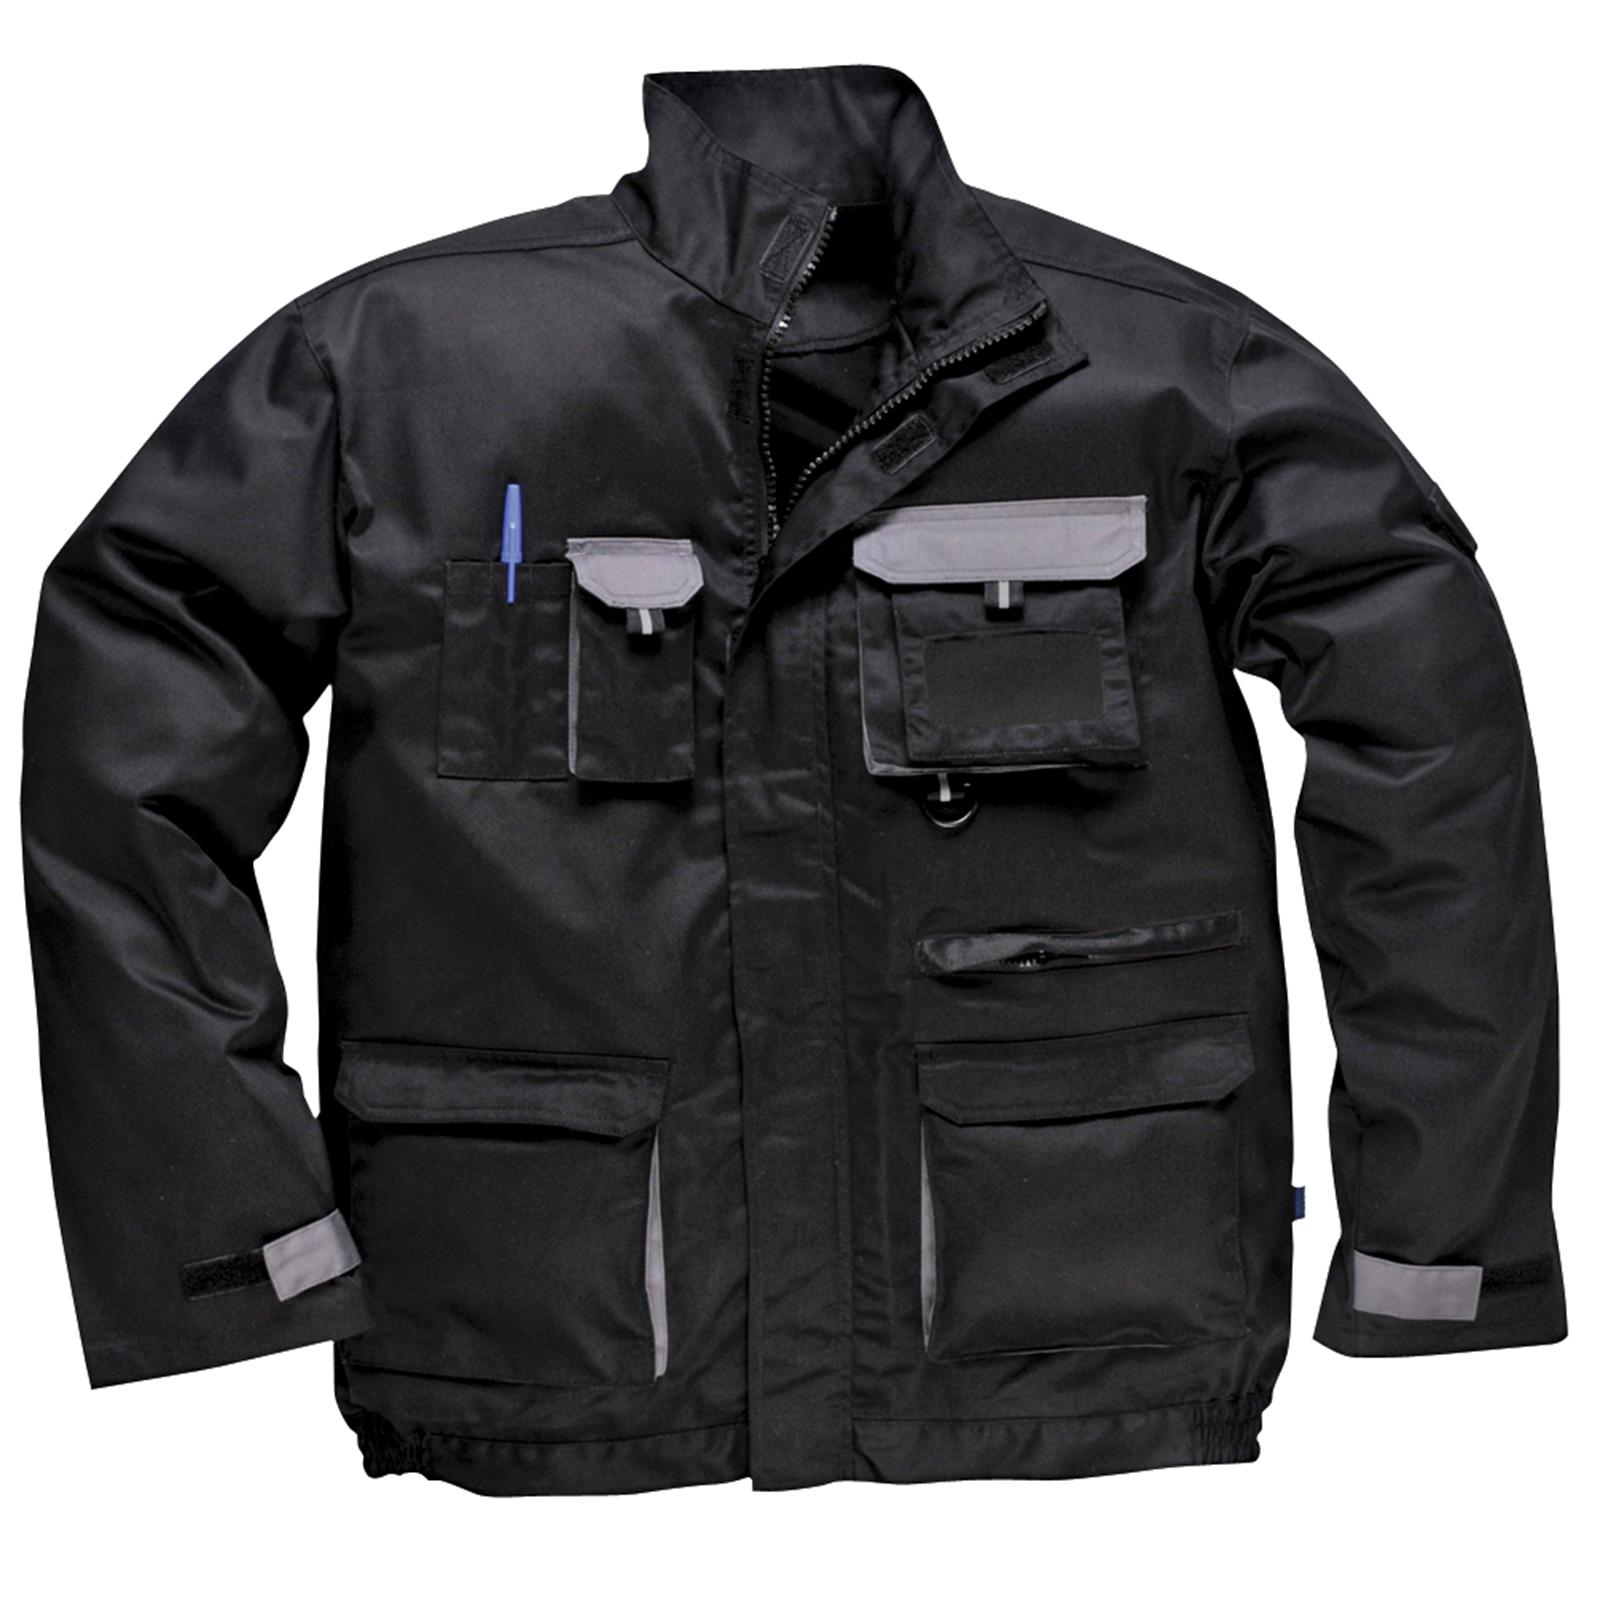 About Men's Work & Utility Jackets Tough and warm men's work jackets are perfect for outdoor jobs, whether the job involves heavy lifting, digging or operating machinery in the elements. Men's work jackets keep your mind off of the temperature and on to the work .